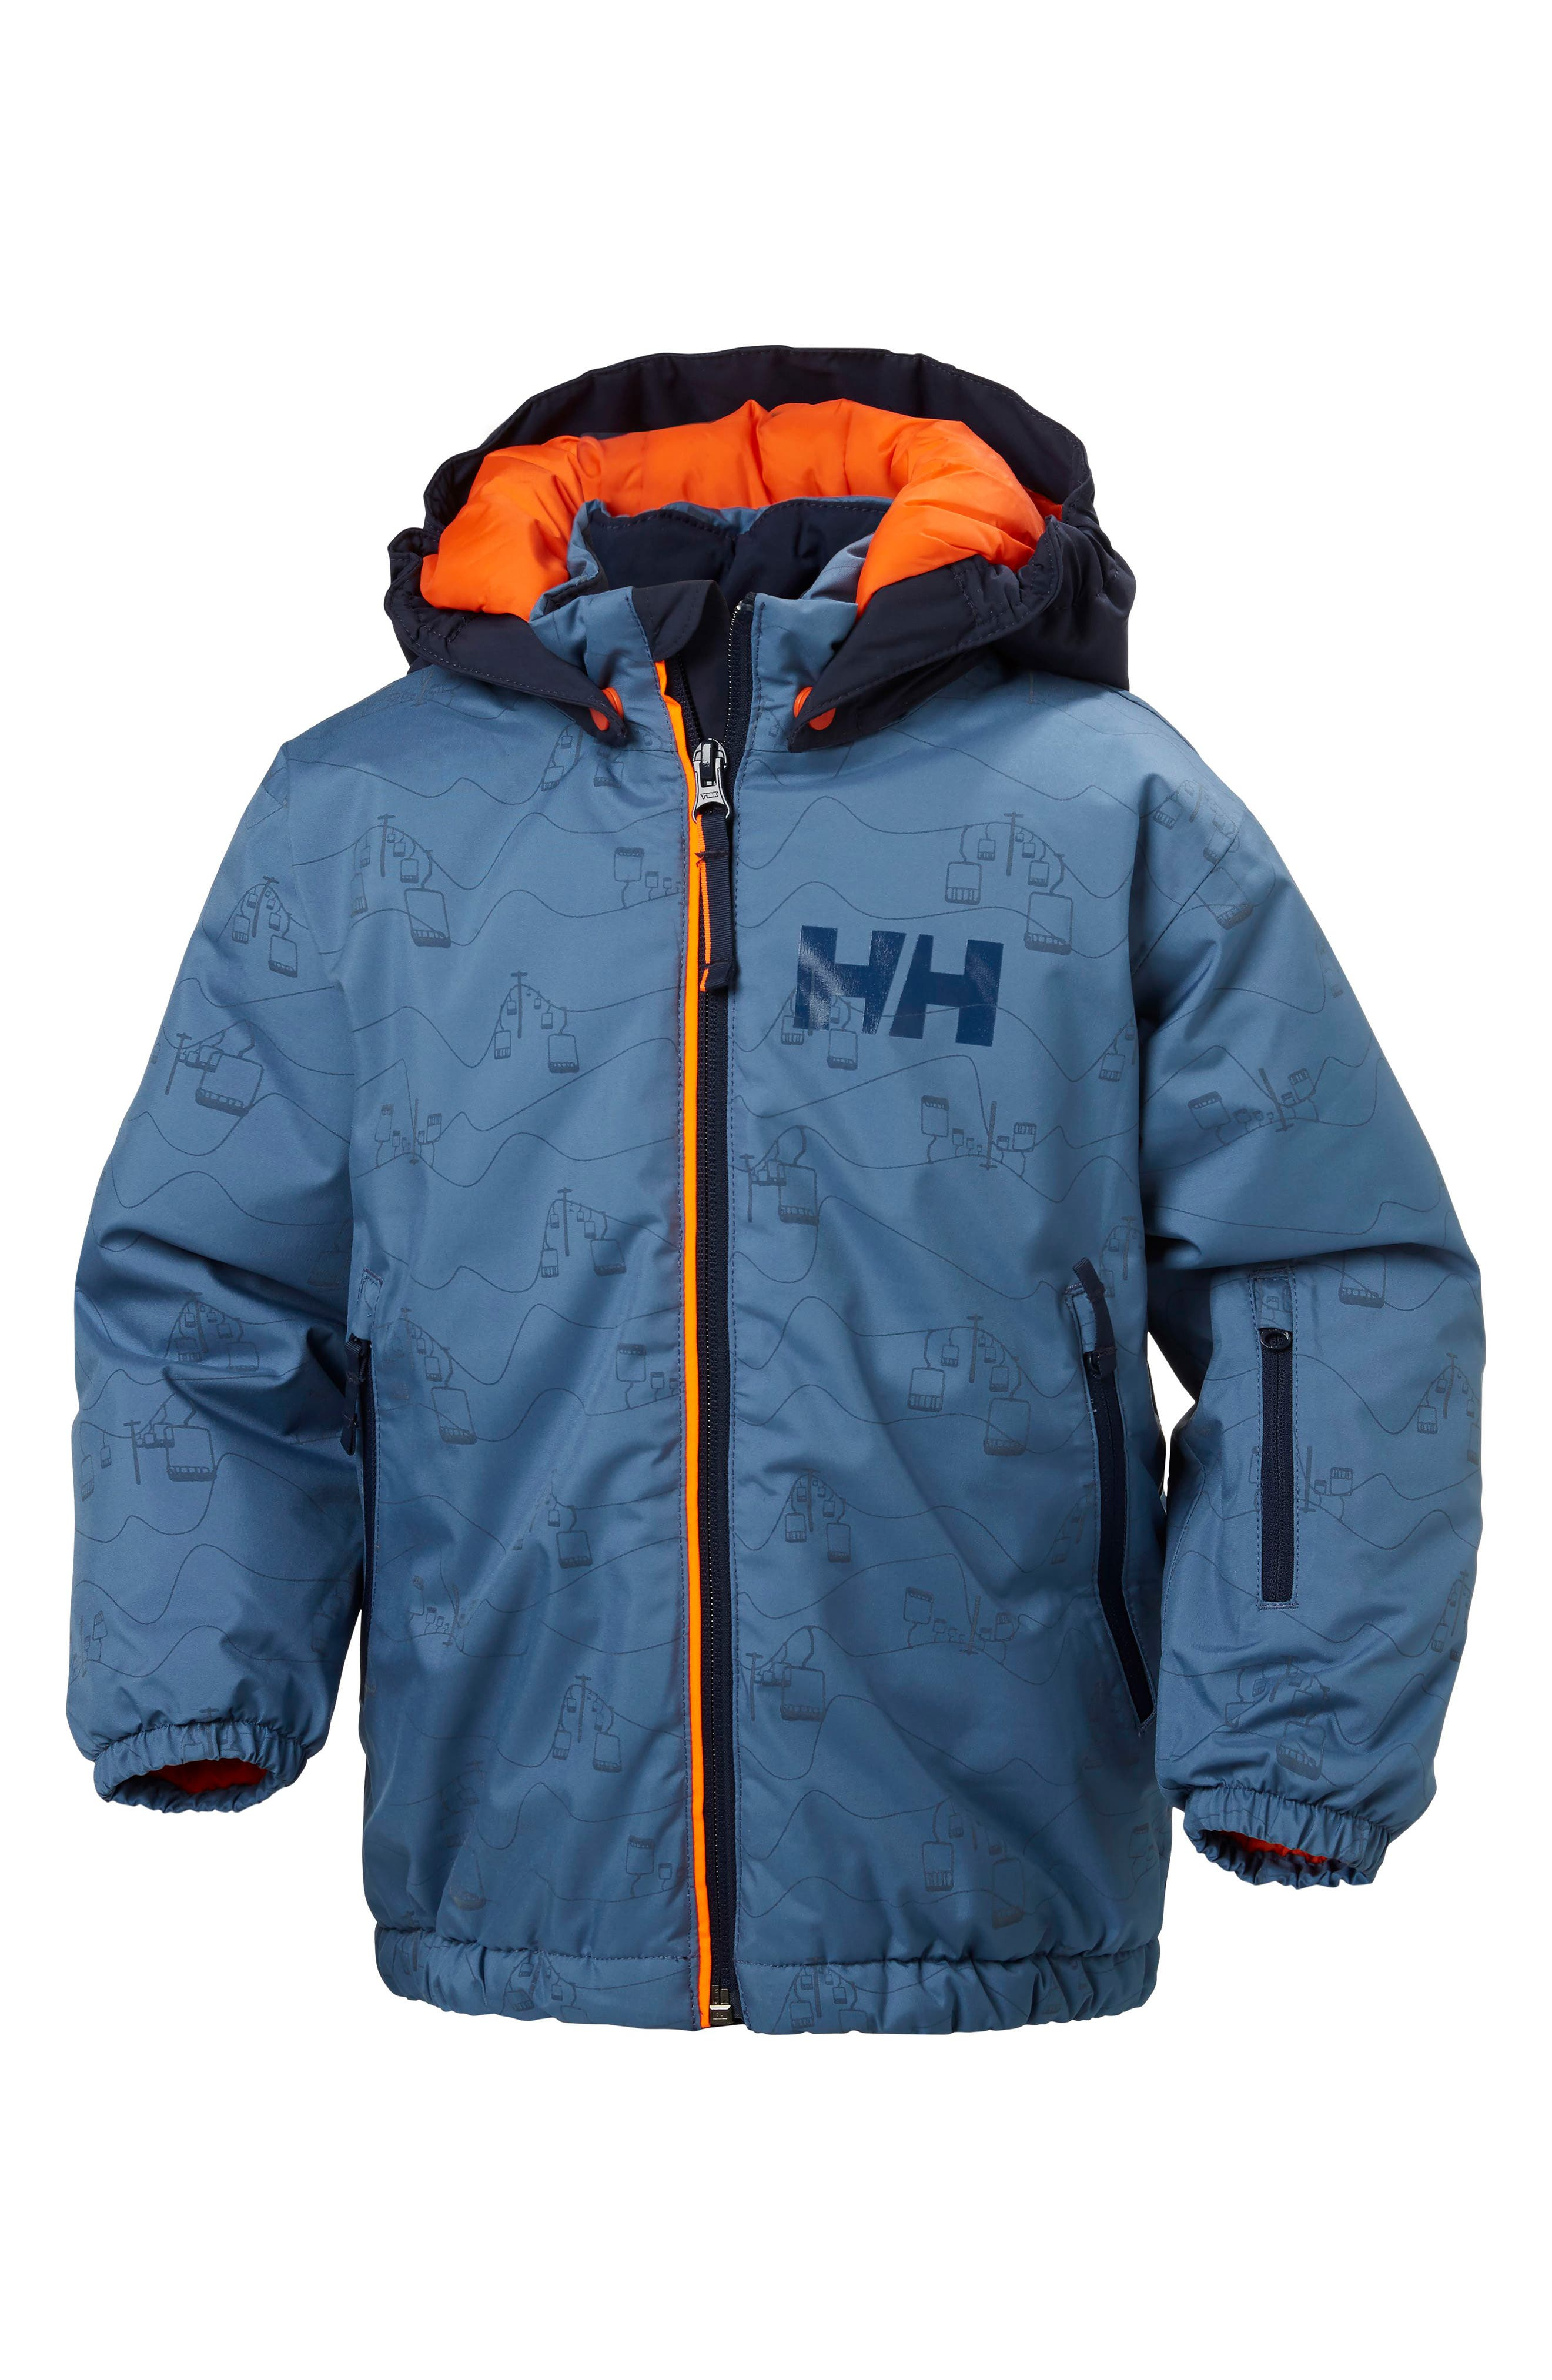 Main Image - Helly Hansen Snowfall Waterproof Insulated Jacket (Toddler Boys, Little Boys & Big Boys)